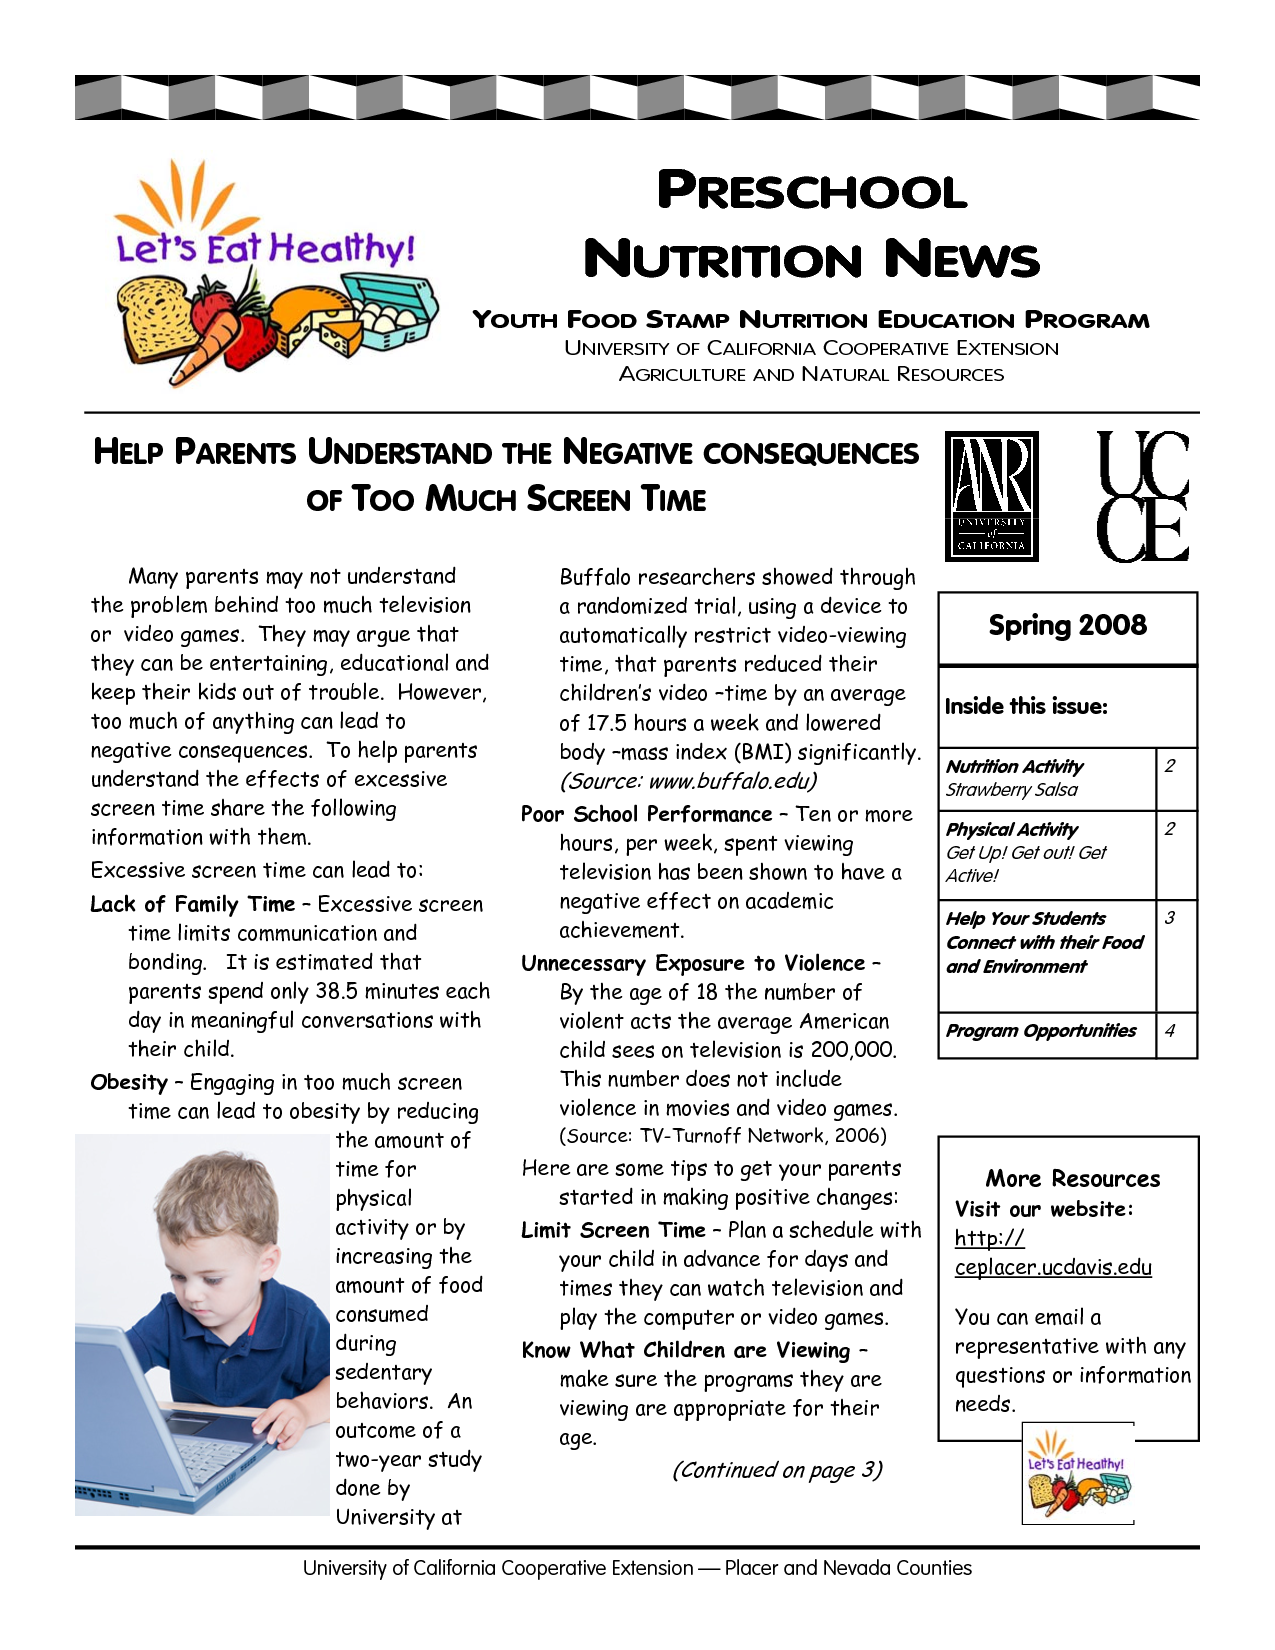 December School Newsletter Ideas  Informed About Classroom